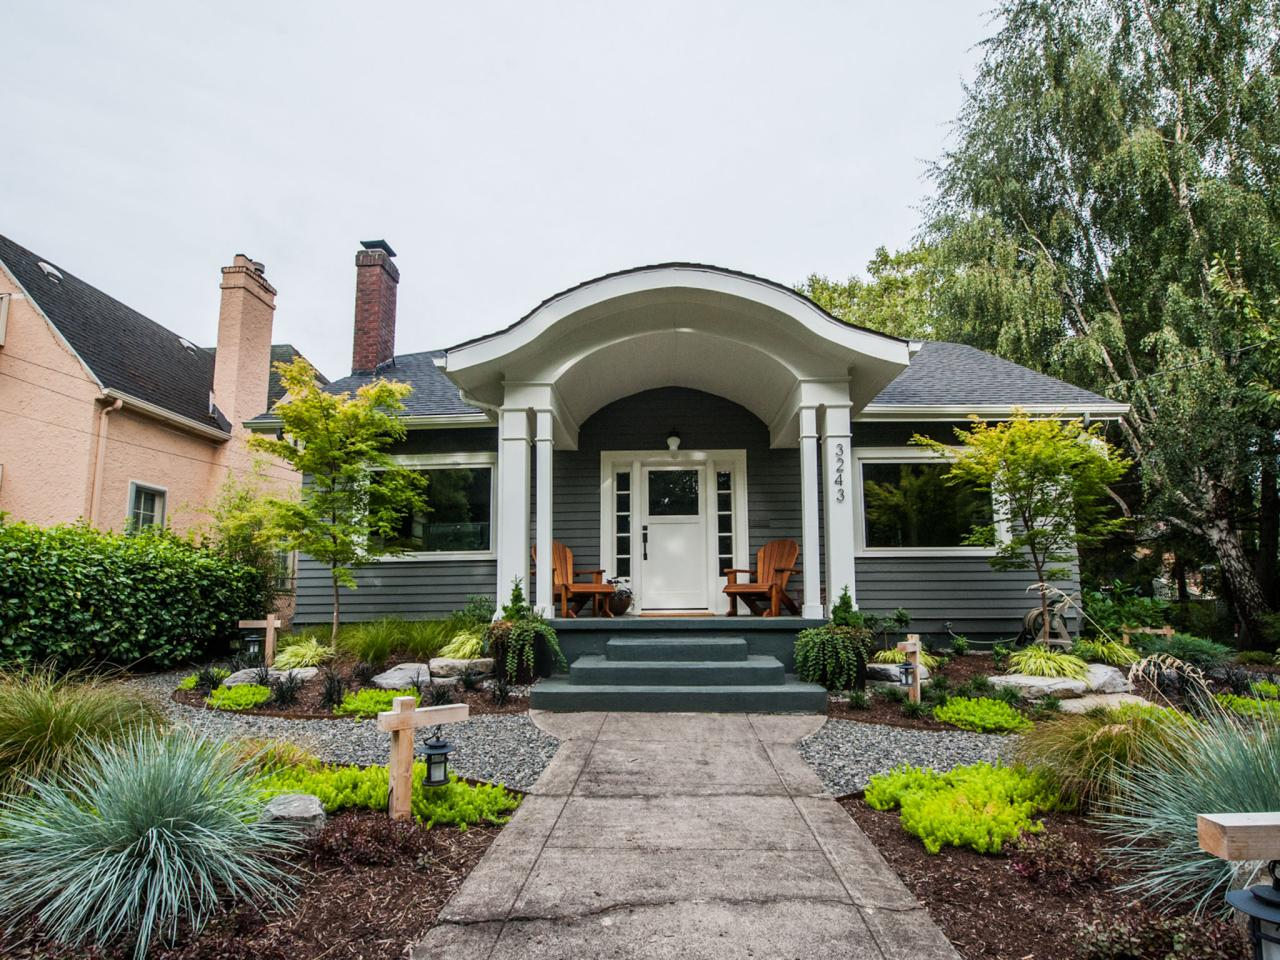 Curb appeal tips for craftsman style homes hgtv for Craftsman landscape design ideas